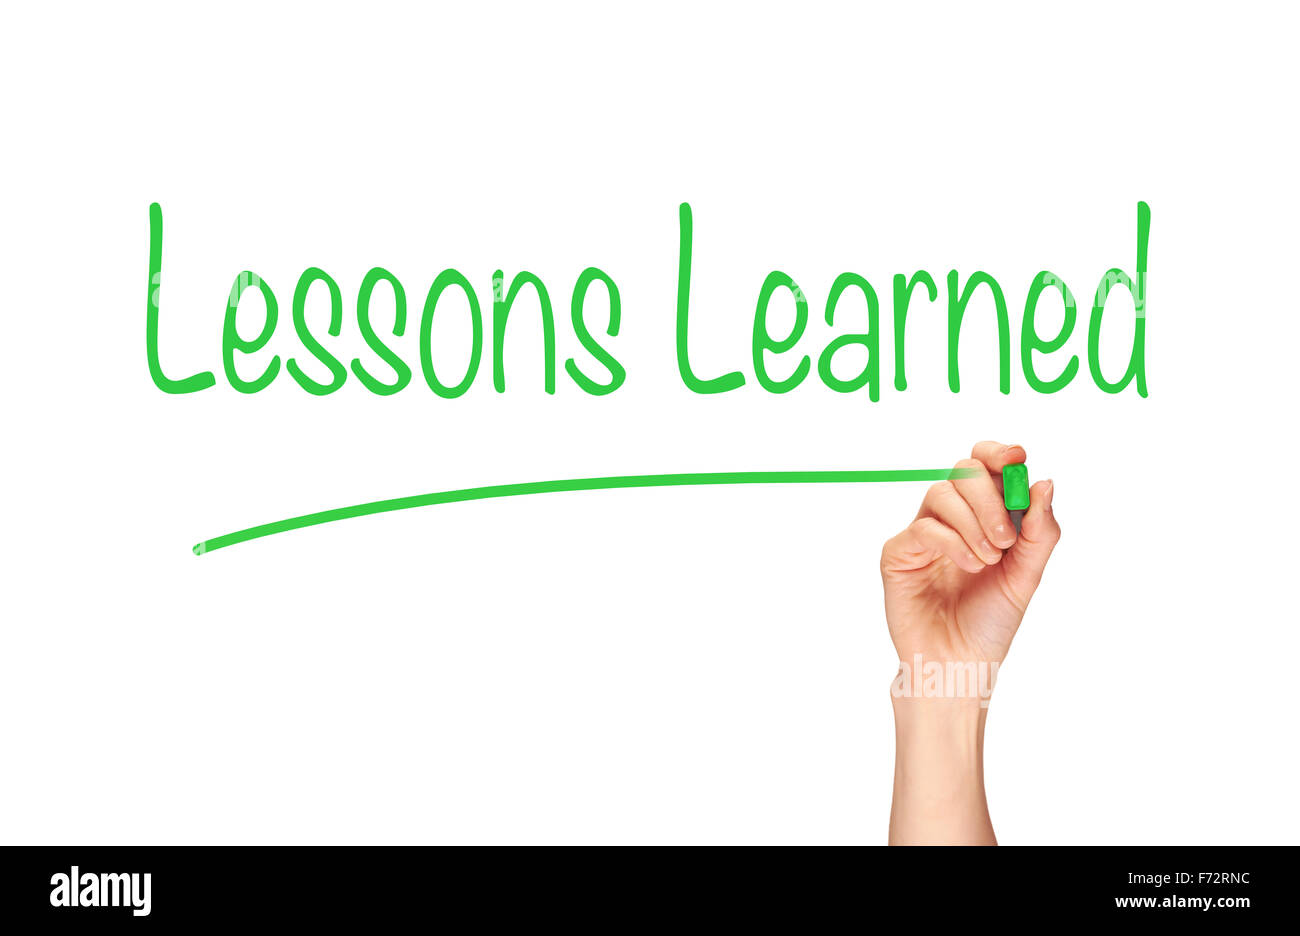 A woman's hand writing the word, Lessons Learned, on a clear screen. - Stock Image